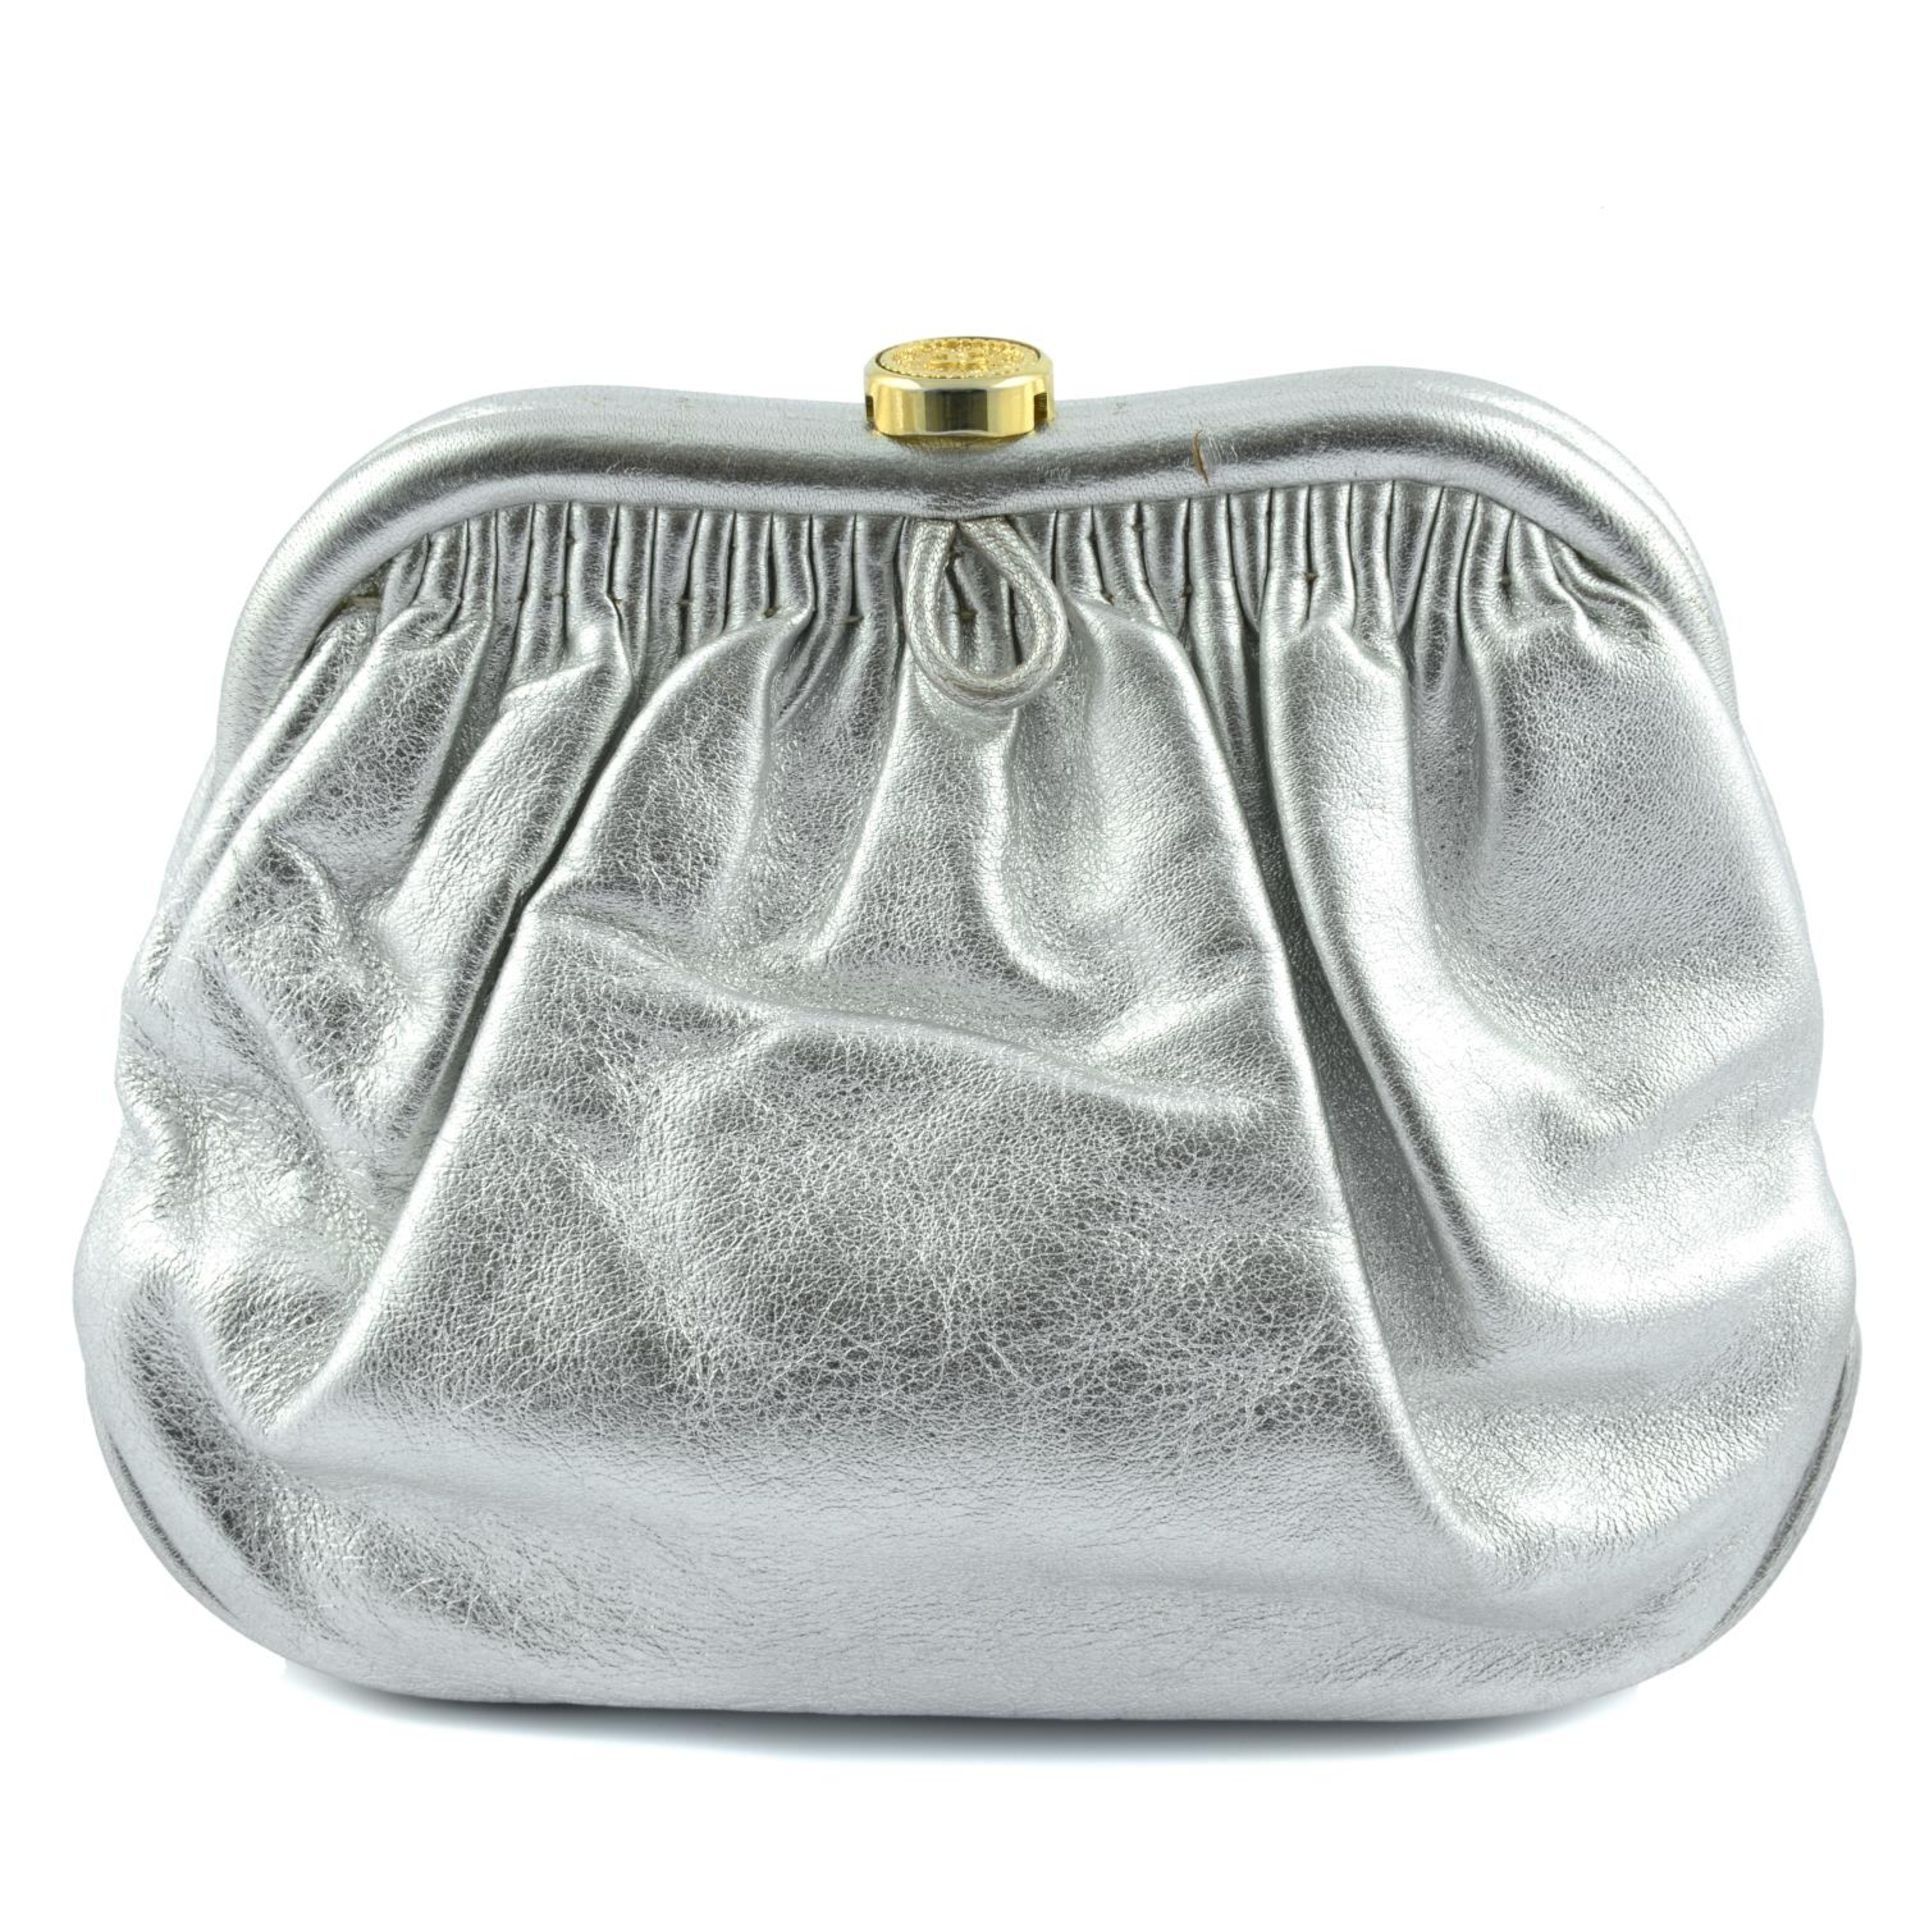 CHANEL - a vintage metallic kiss-lock clutch with chain.